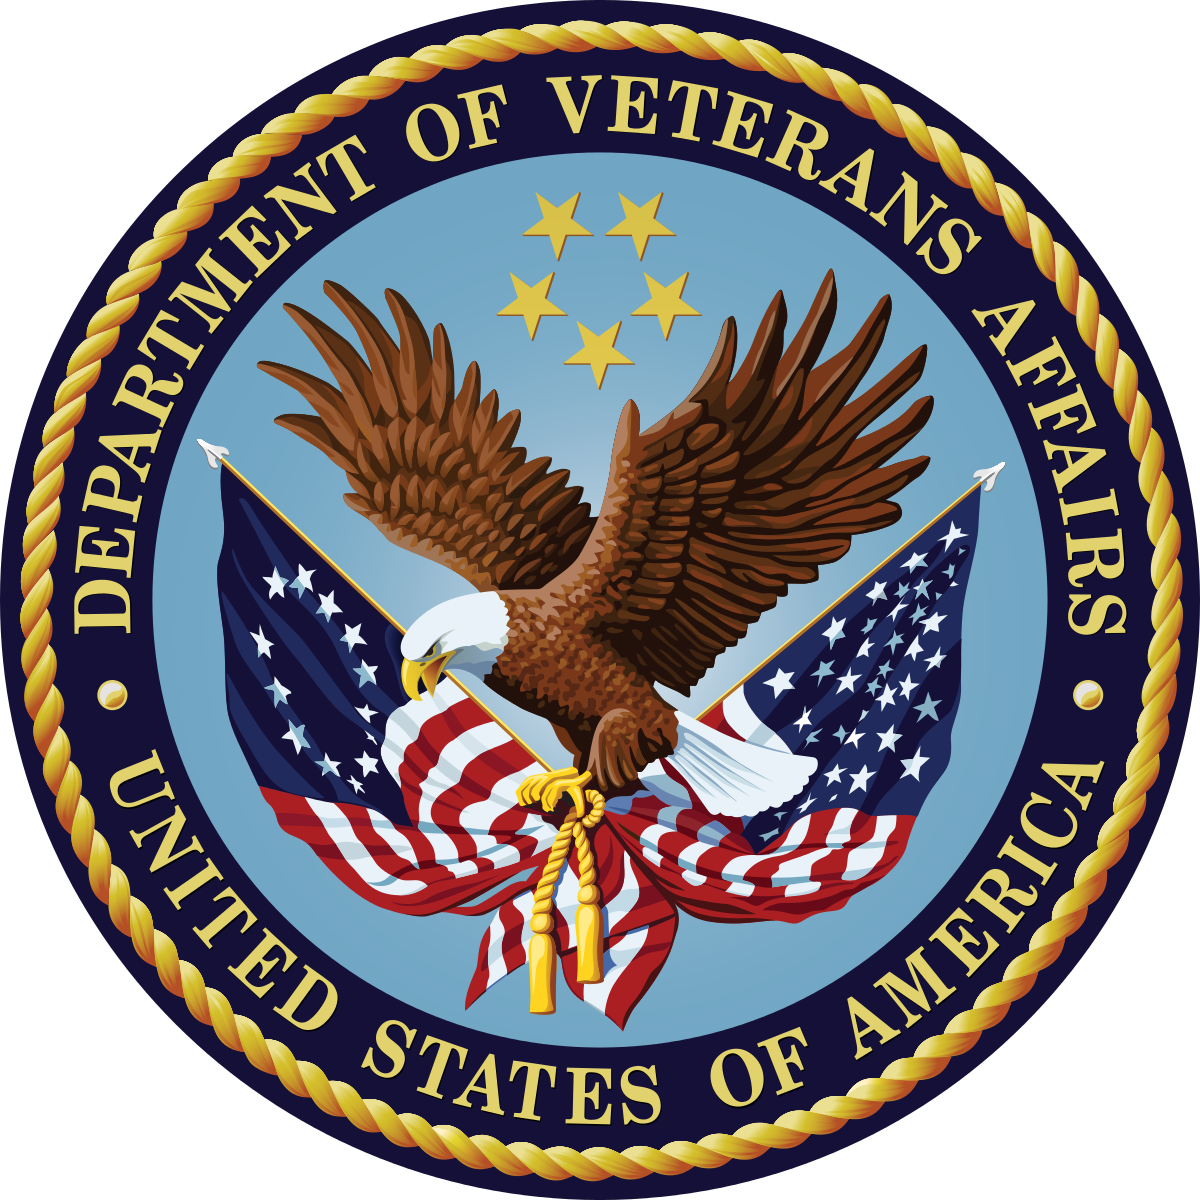 U.S. Department of Veterans Affairs - Veterans Health Administration logo